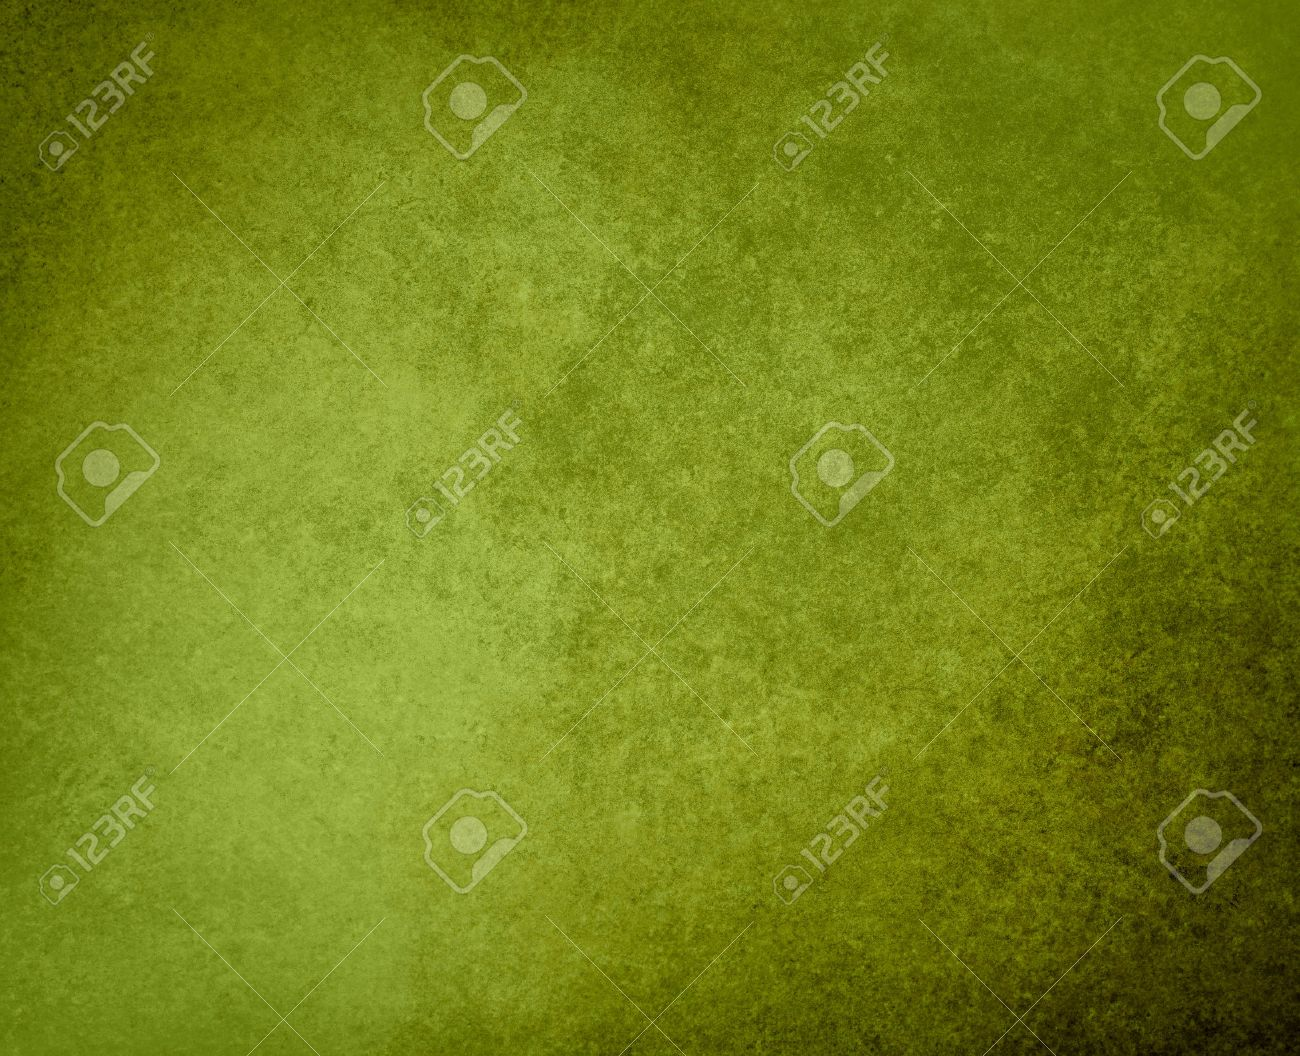 green background or grunge texture in olive green color, with black vintage grunge frame, has old faded solid background for text or copy space - 44566776